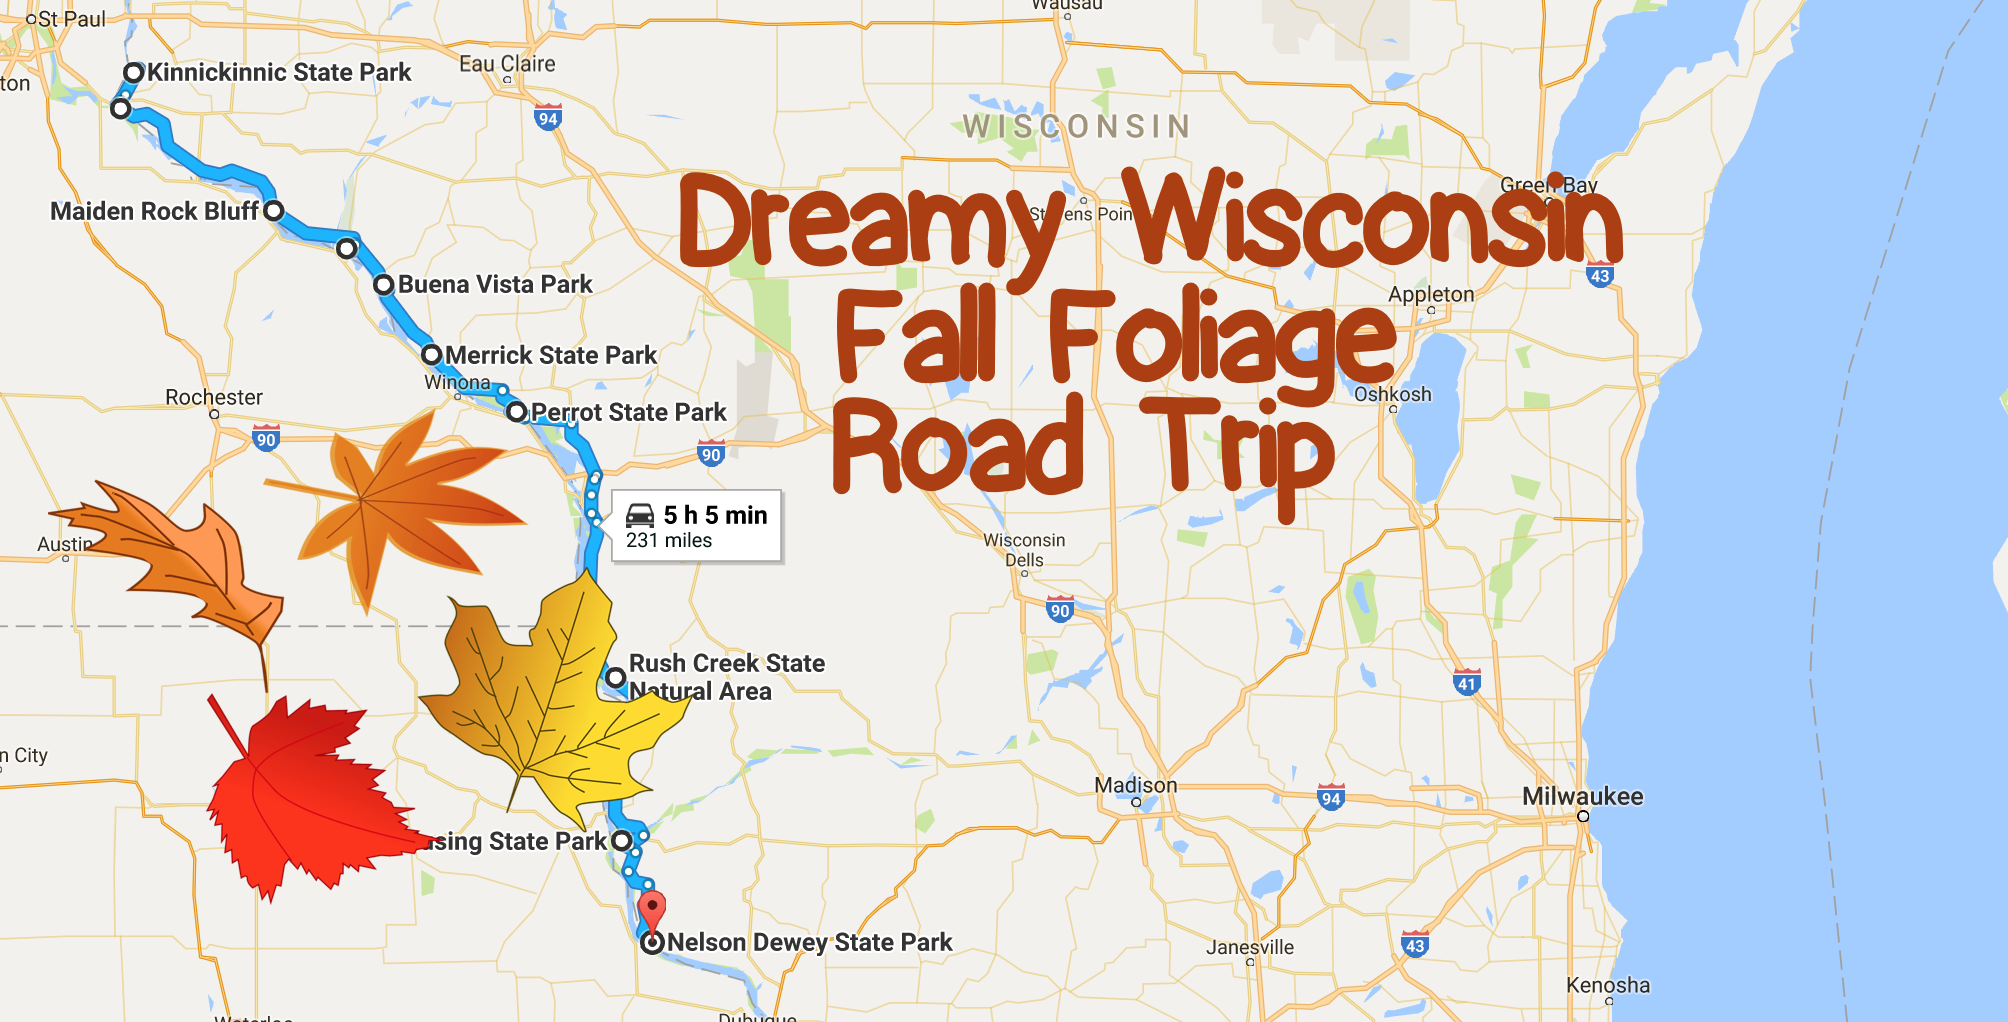 The Great River Road Provides a Great Backdrop for this Dreamy Wisconsin Fall Foliage Road Trip